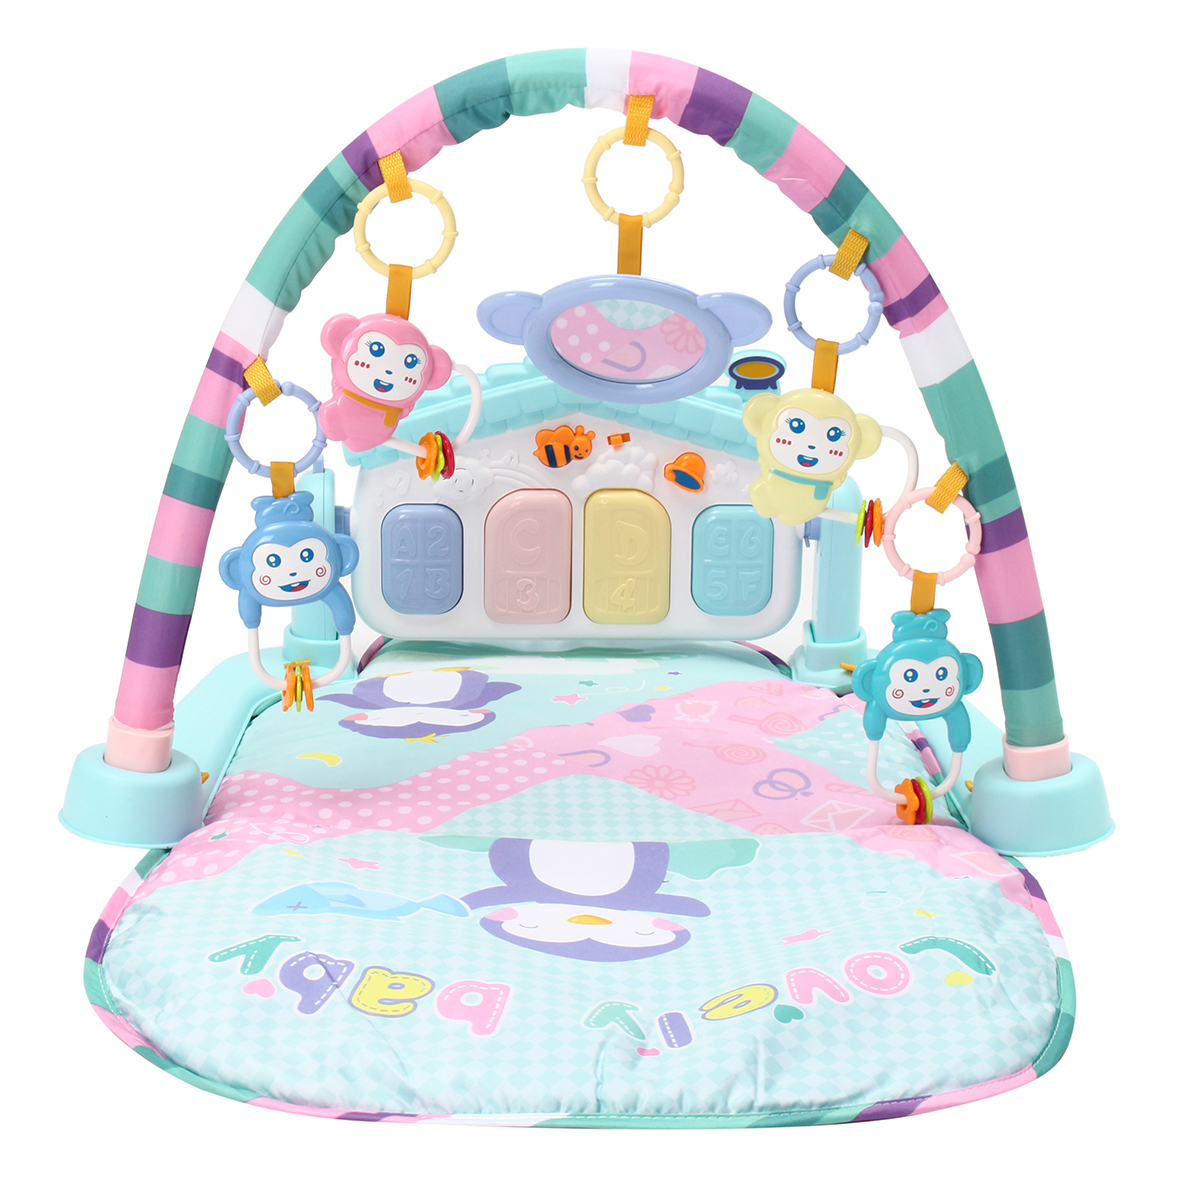 Meigar 3 in 1 Musical Piano Play Mat Blanket Activity Gym with Baby Toddler Infant Development Special Today